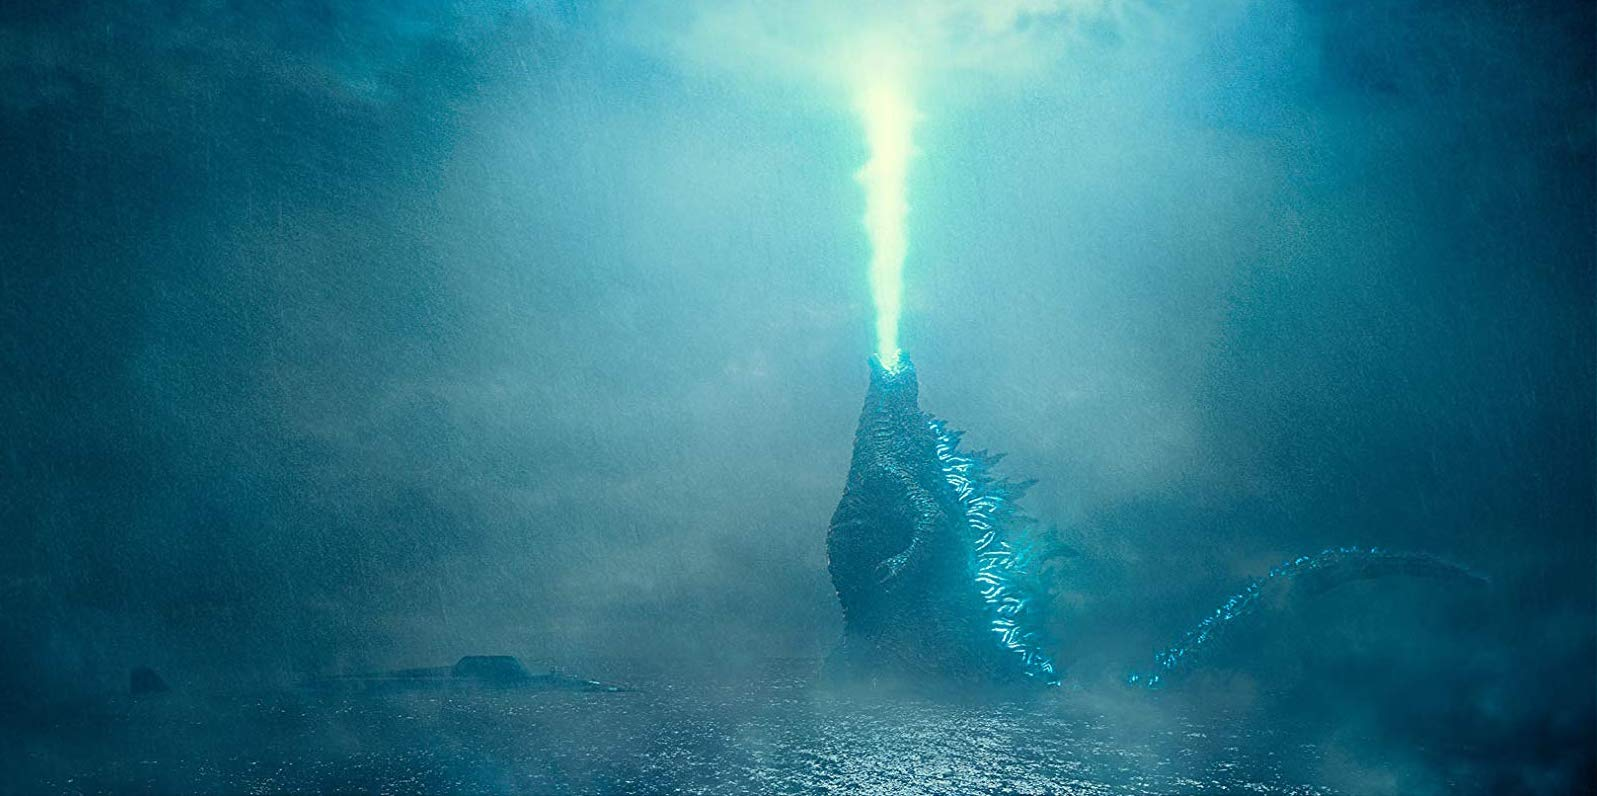 Godzilla: King of the Monsters - dir. Michael Dougherty